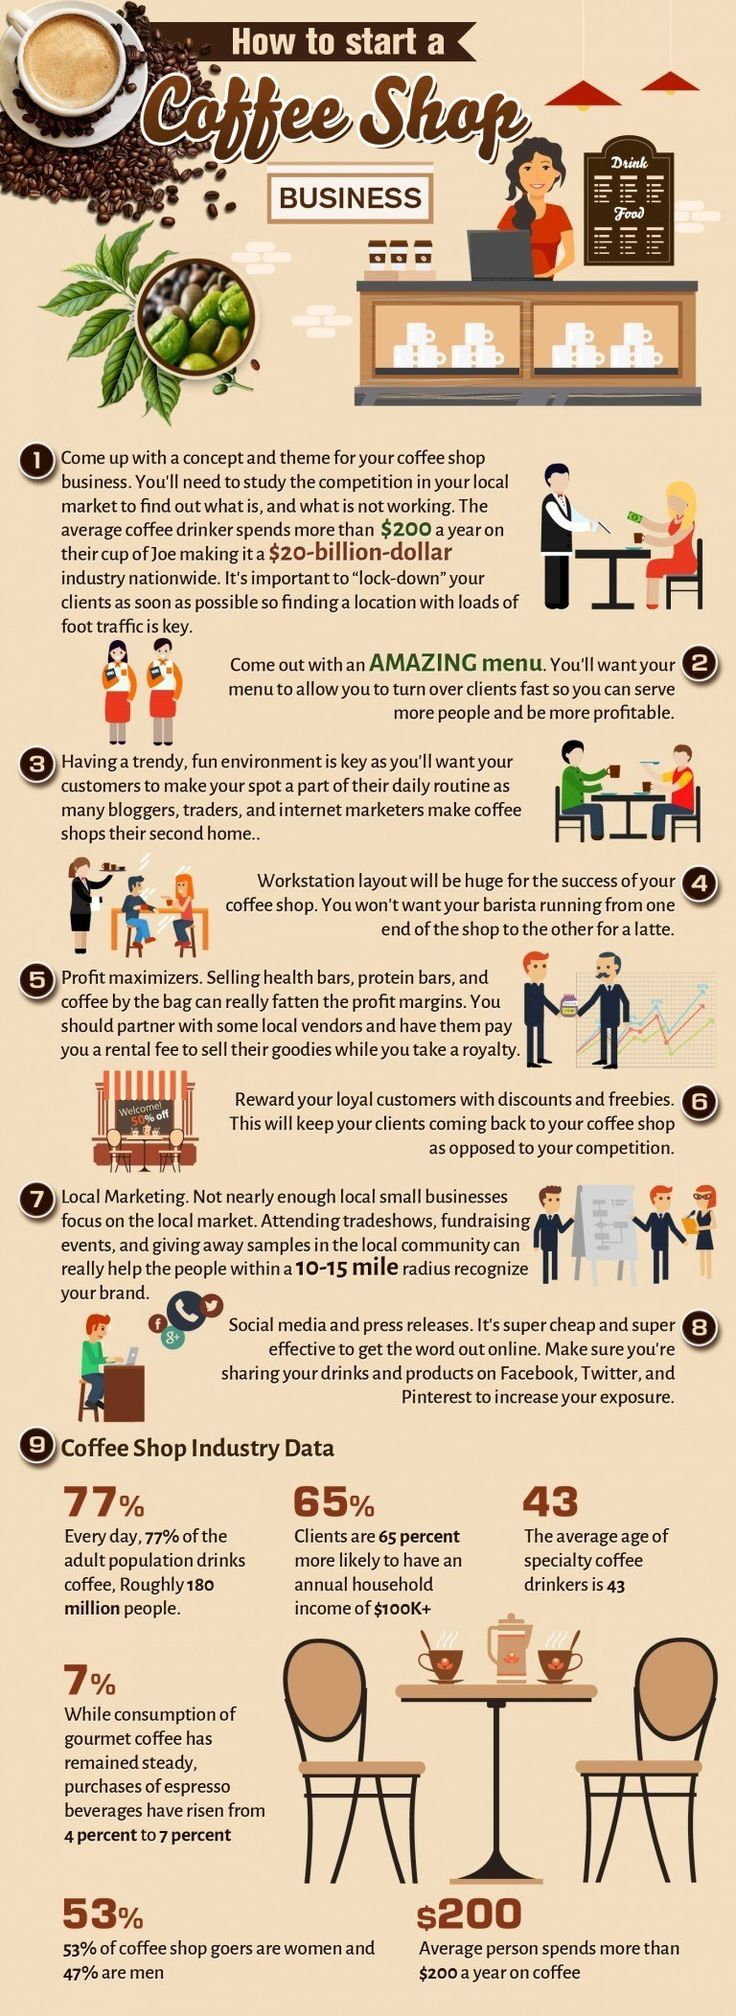 how to start a coffee shop business infographic